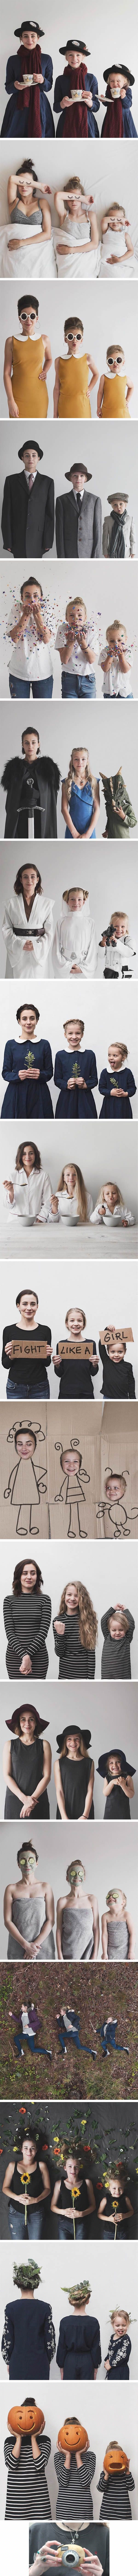 Mother Takes Adorable Photos With Her Two Daughters In Matching Clothing - Funny Memes